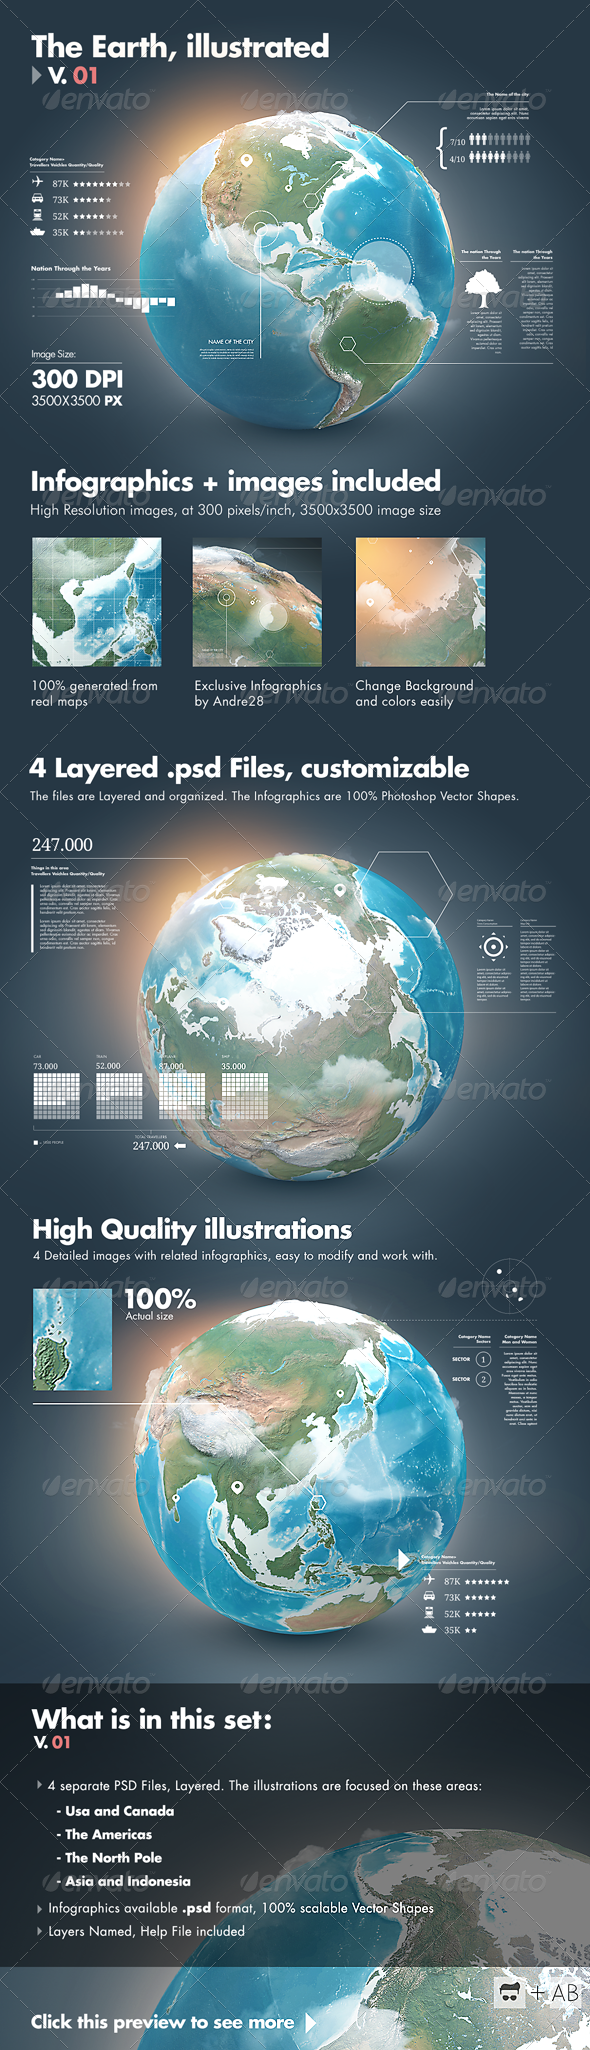 Earth Illustrated, 3D World and Infographics - V1  - Infographics